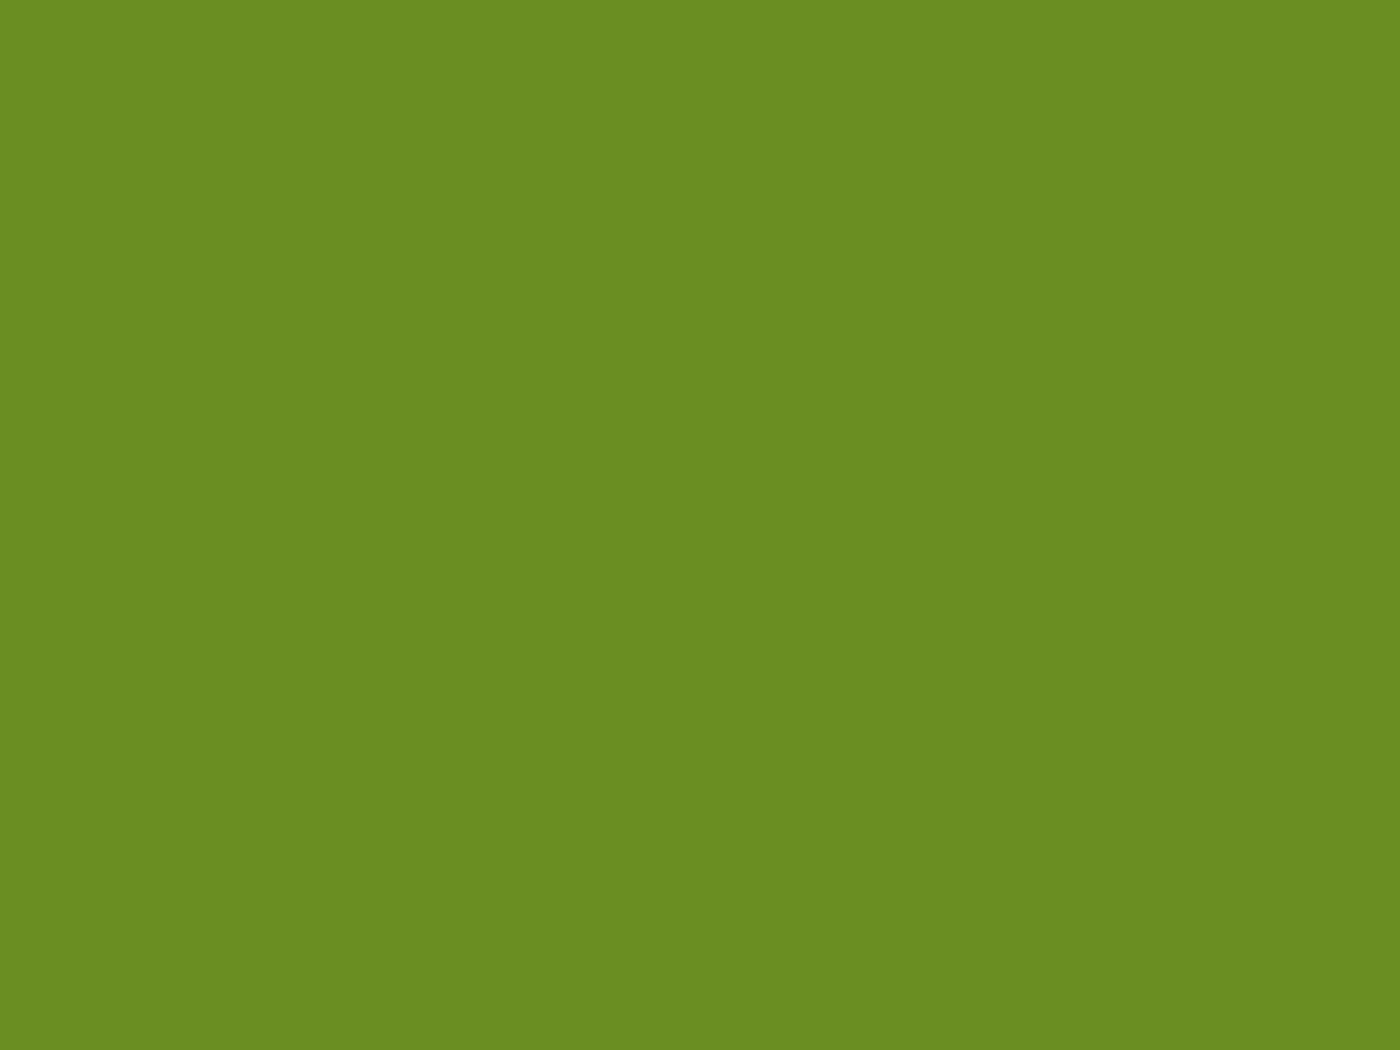 1400x1050 Olive Drab Number Three Solid Color Background